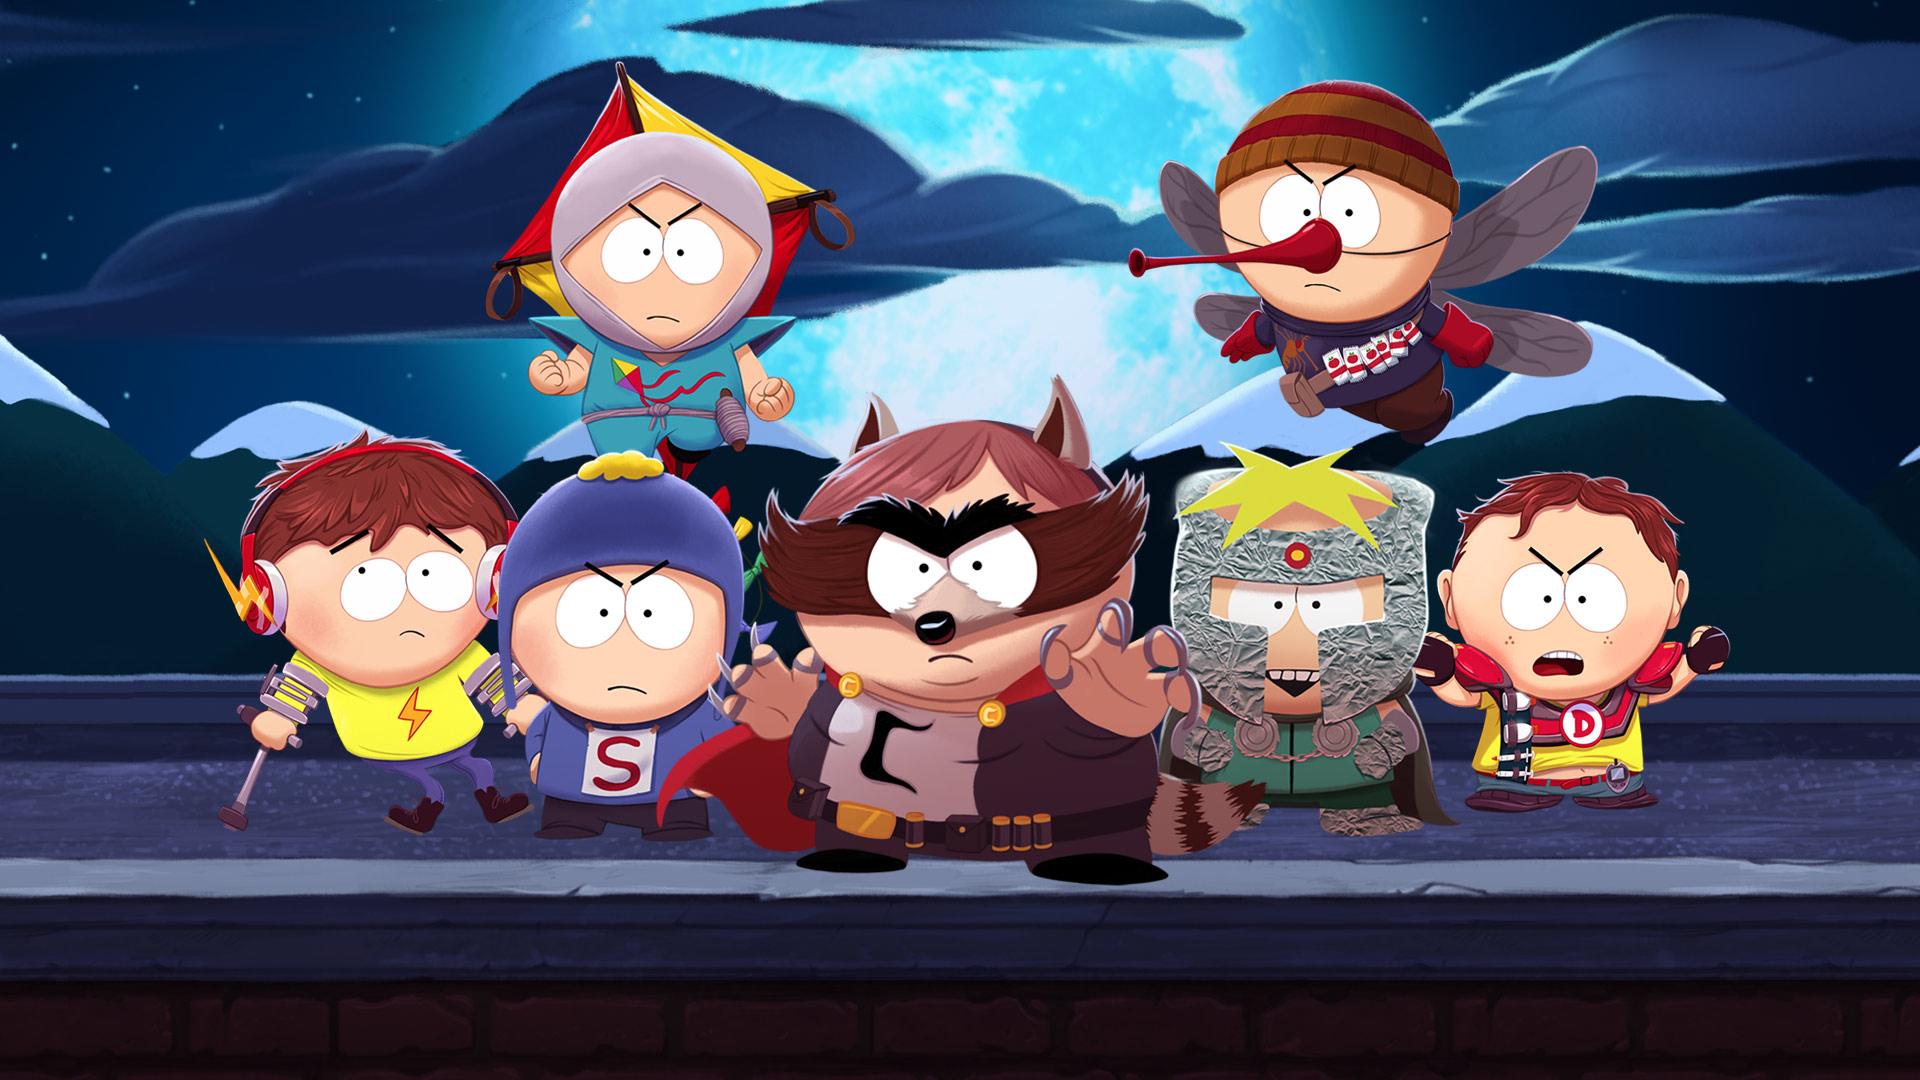 Steam Card Exchange Showcase South Park The Fractured But Whole 1920x1080